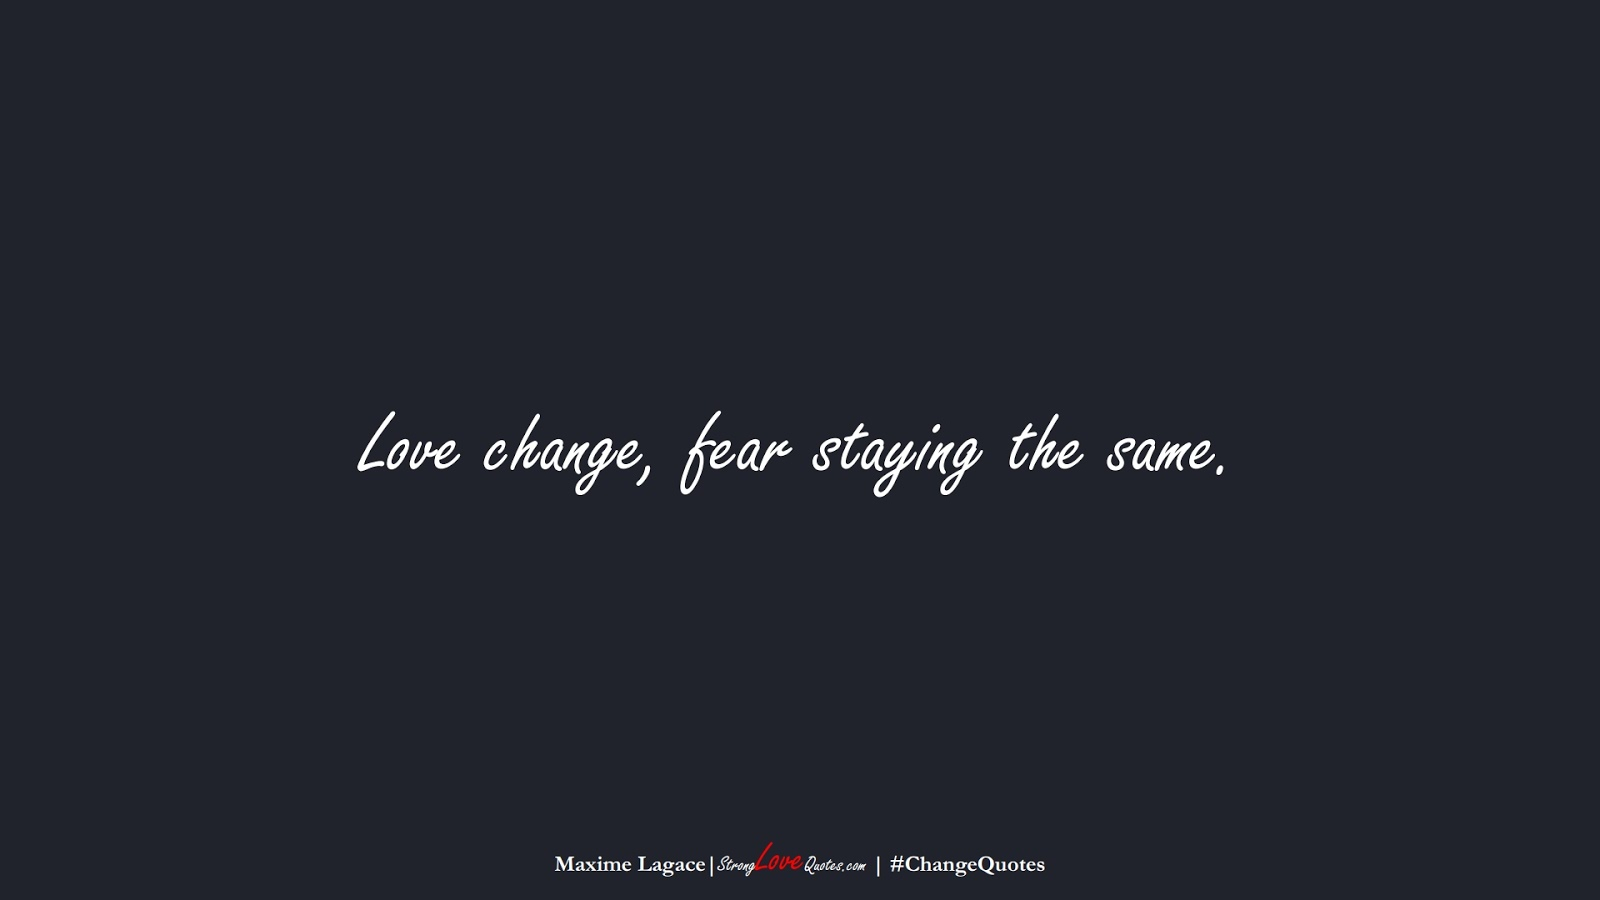 Love change, fear staying the same. (Maxime Lagace);  #ChangeQuotes